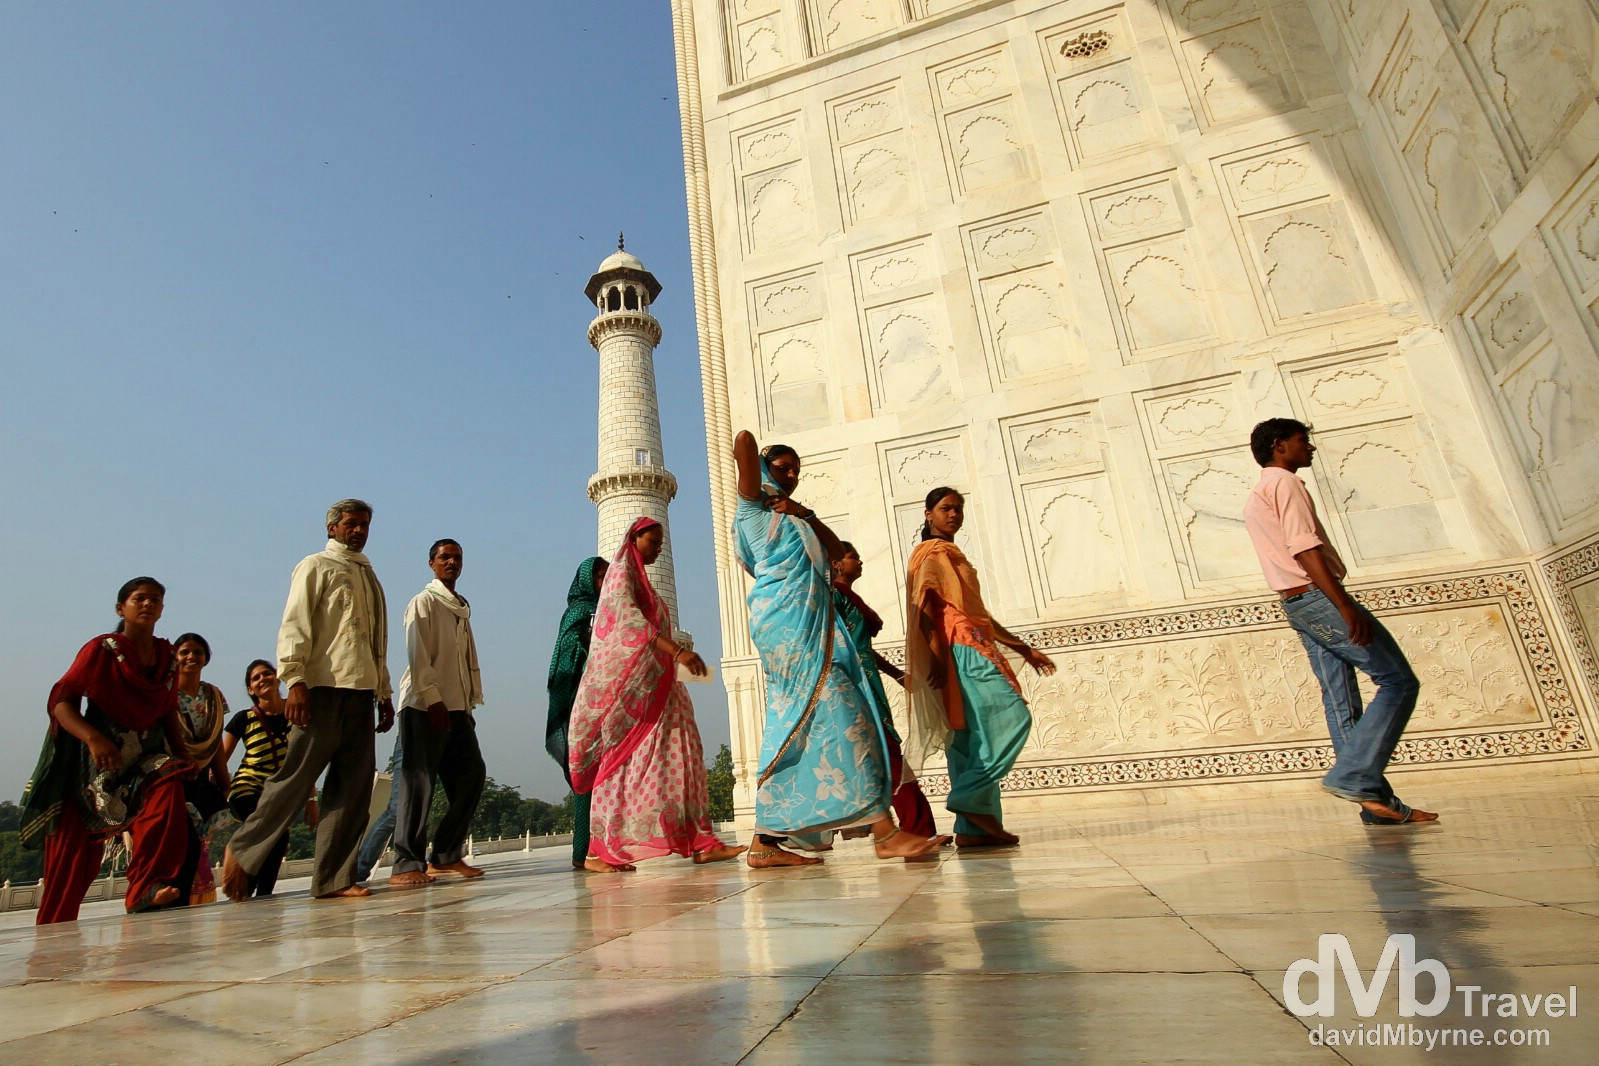 An Indian family entering the central burial chamber of the Taj Mahal in Agra, Uttar Pradesh, India. October 11th 2012.